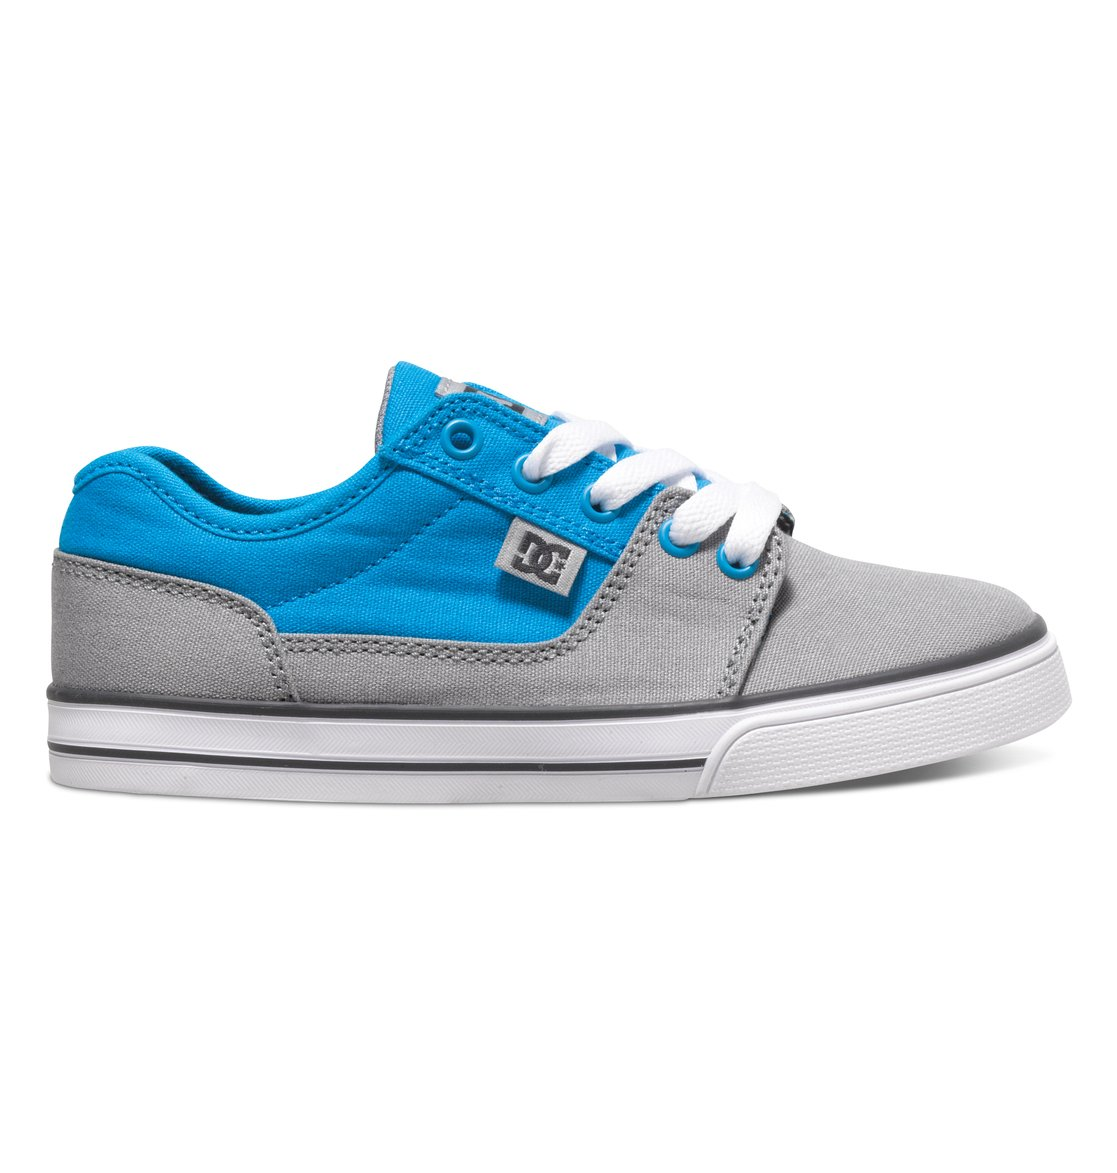 DC Shoes Tonik TX SE - Shoes - Zapatos - Chicos - EU 36.5